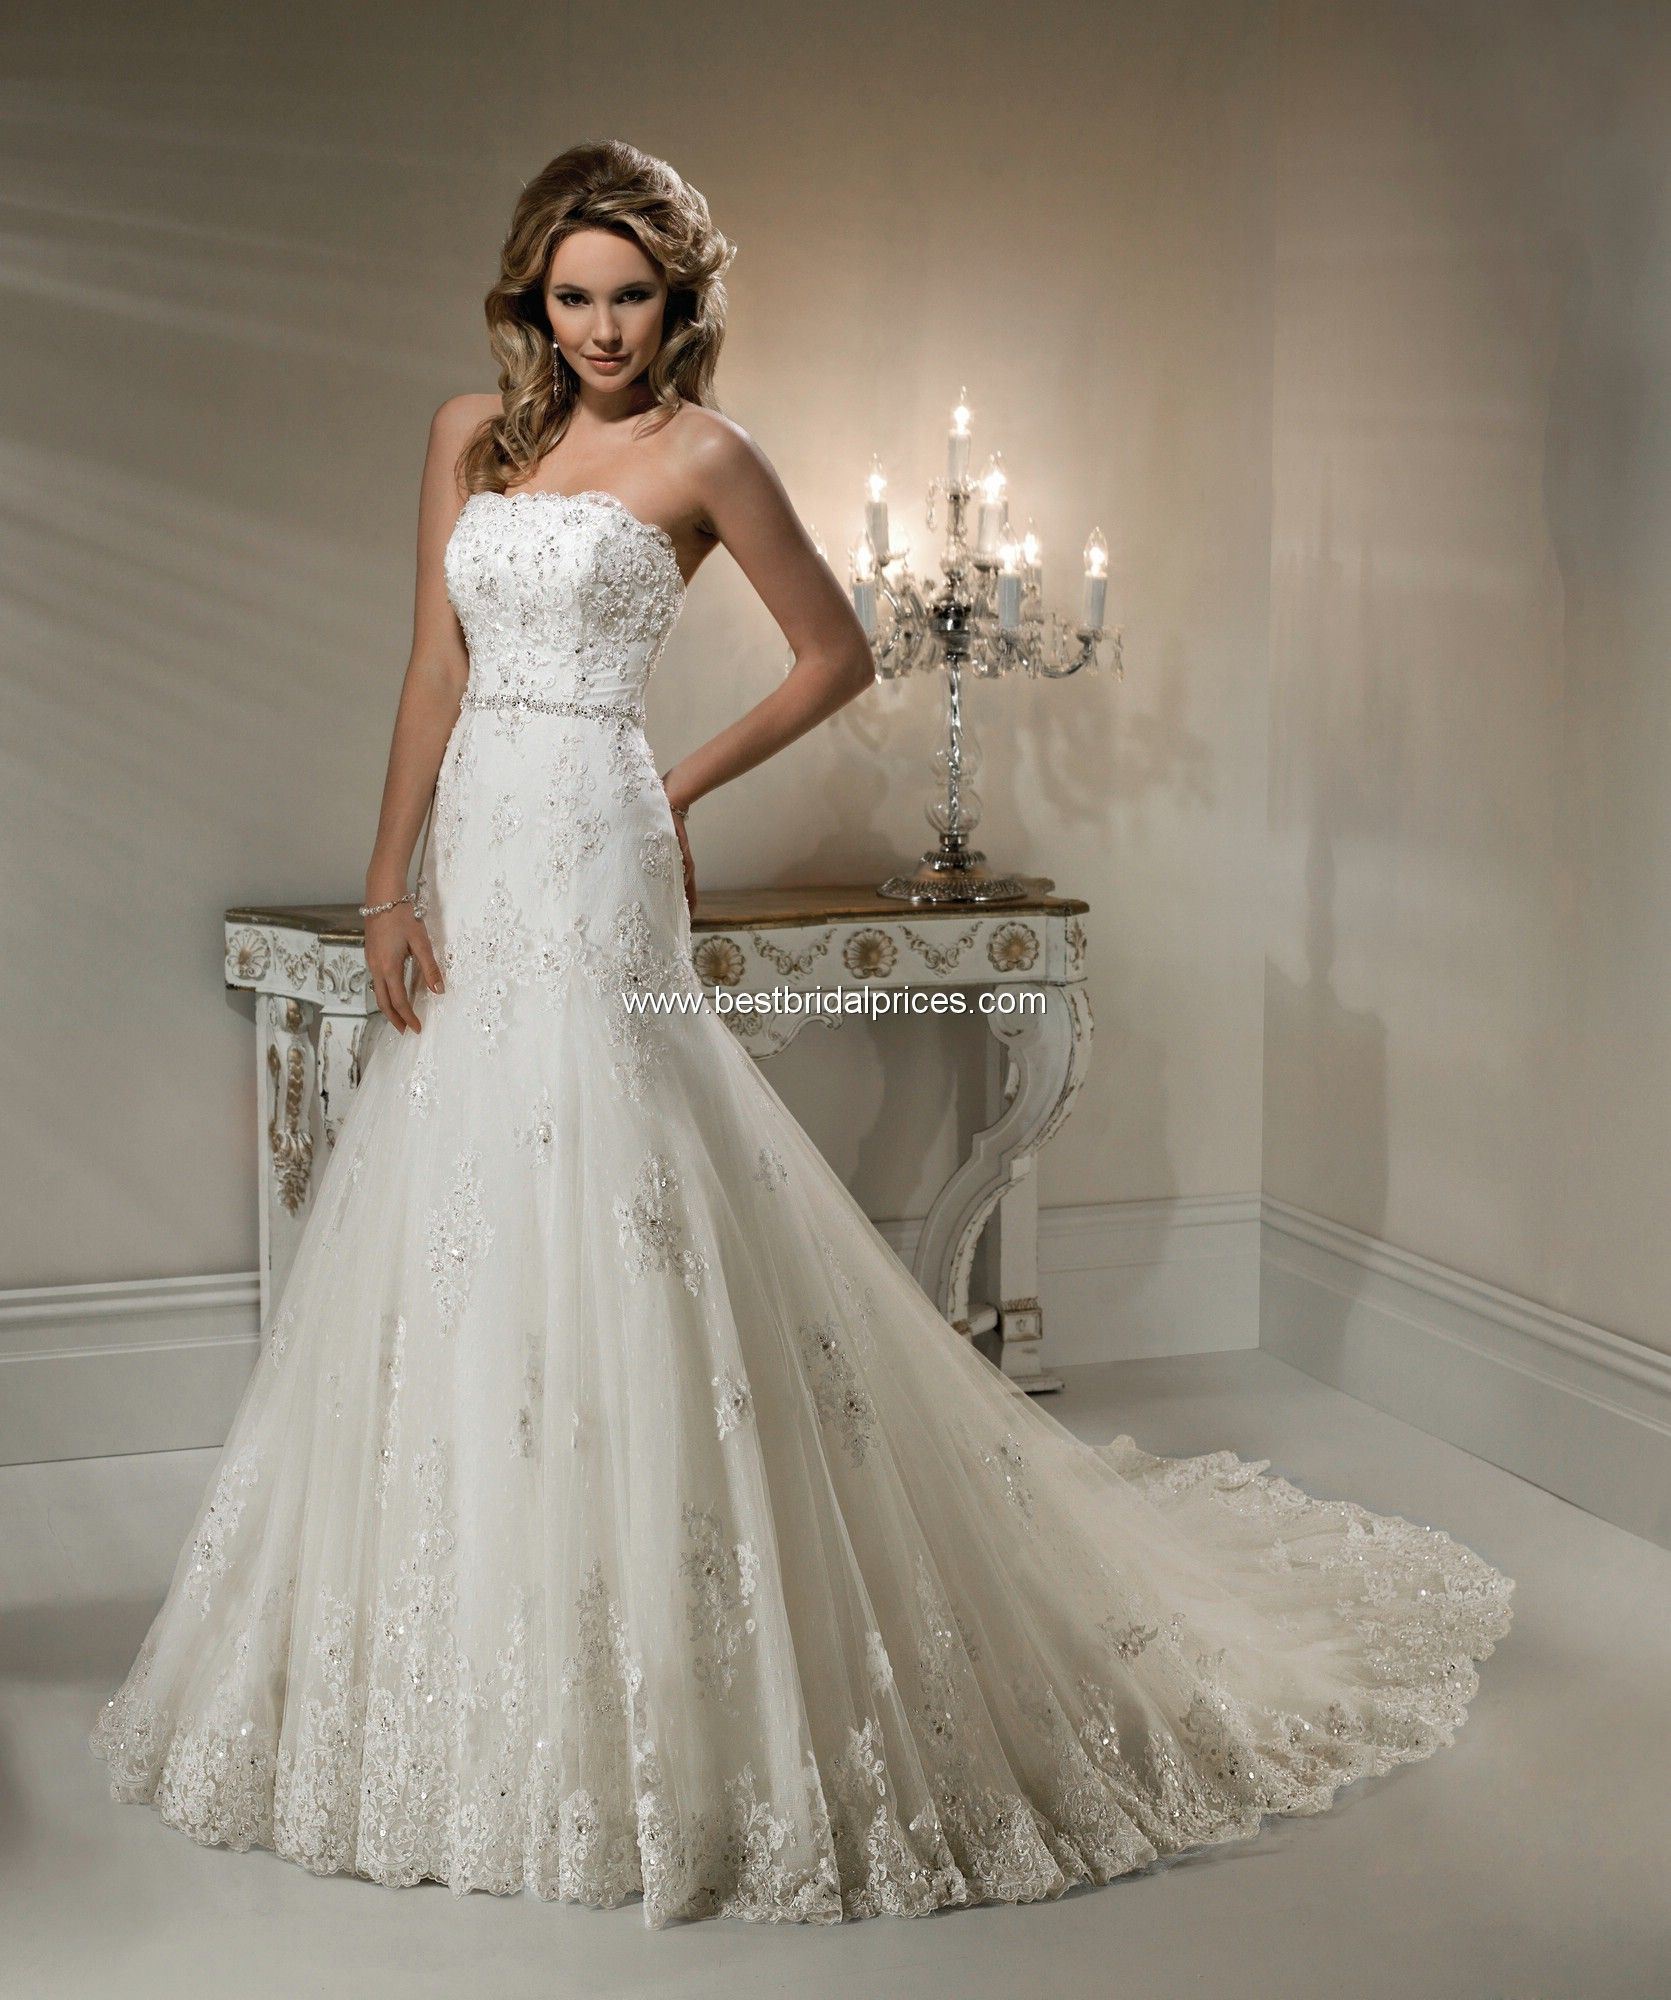 1000  images about Wedding Dresses on Pinterest - Olivia d&-39-abo ...